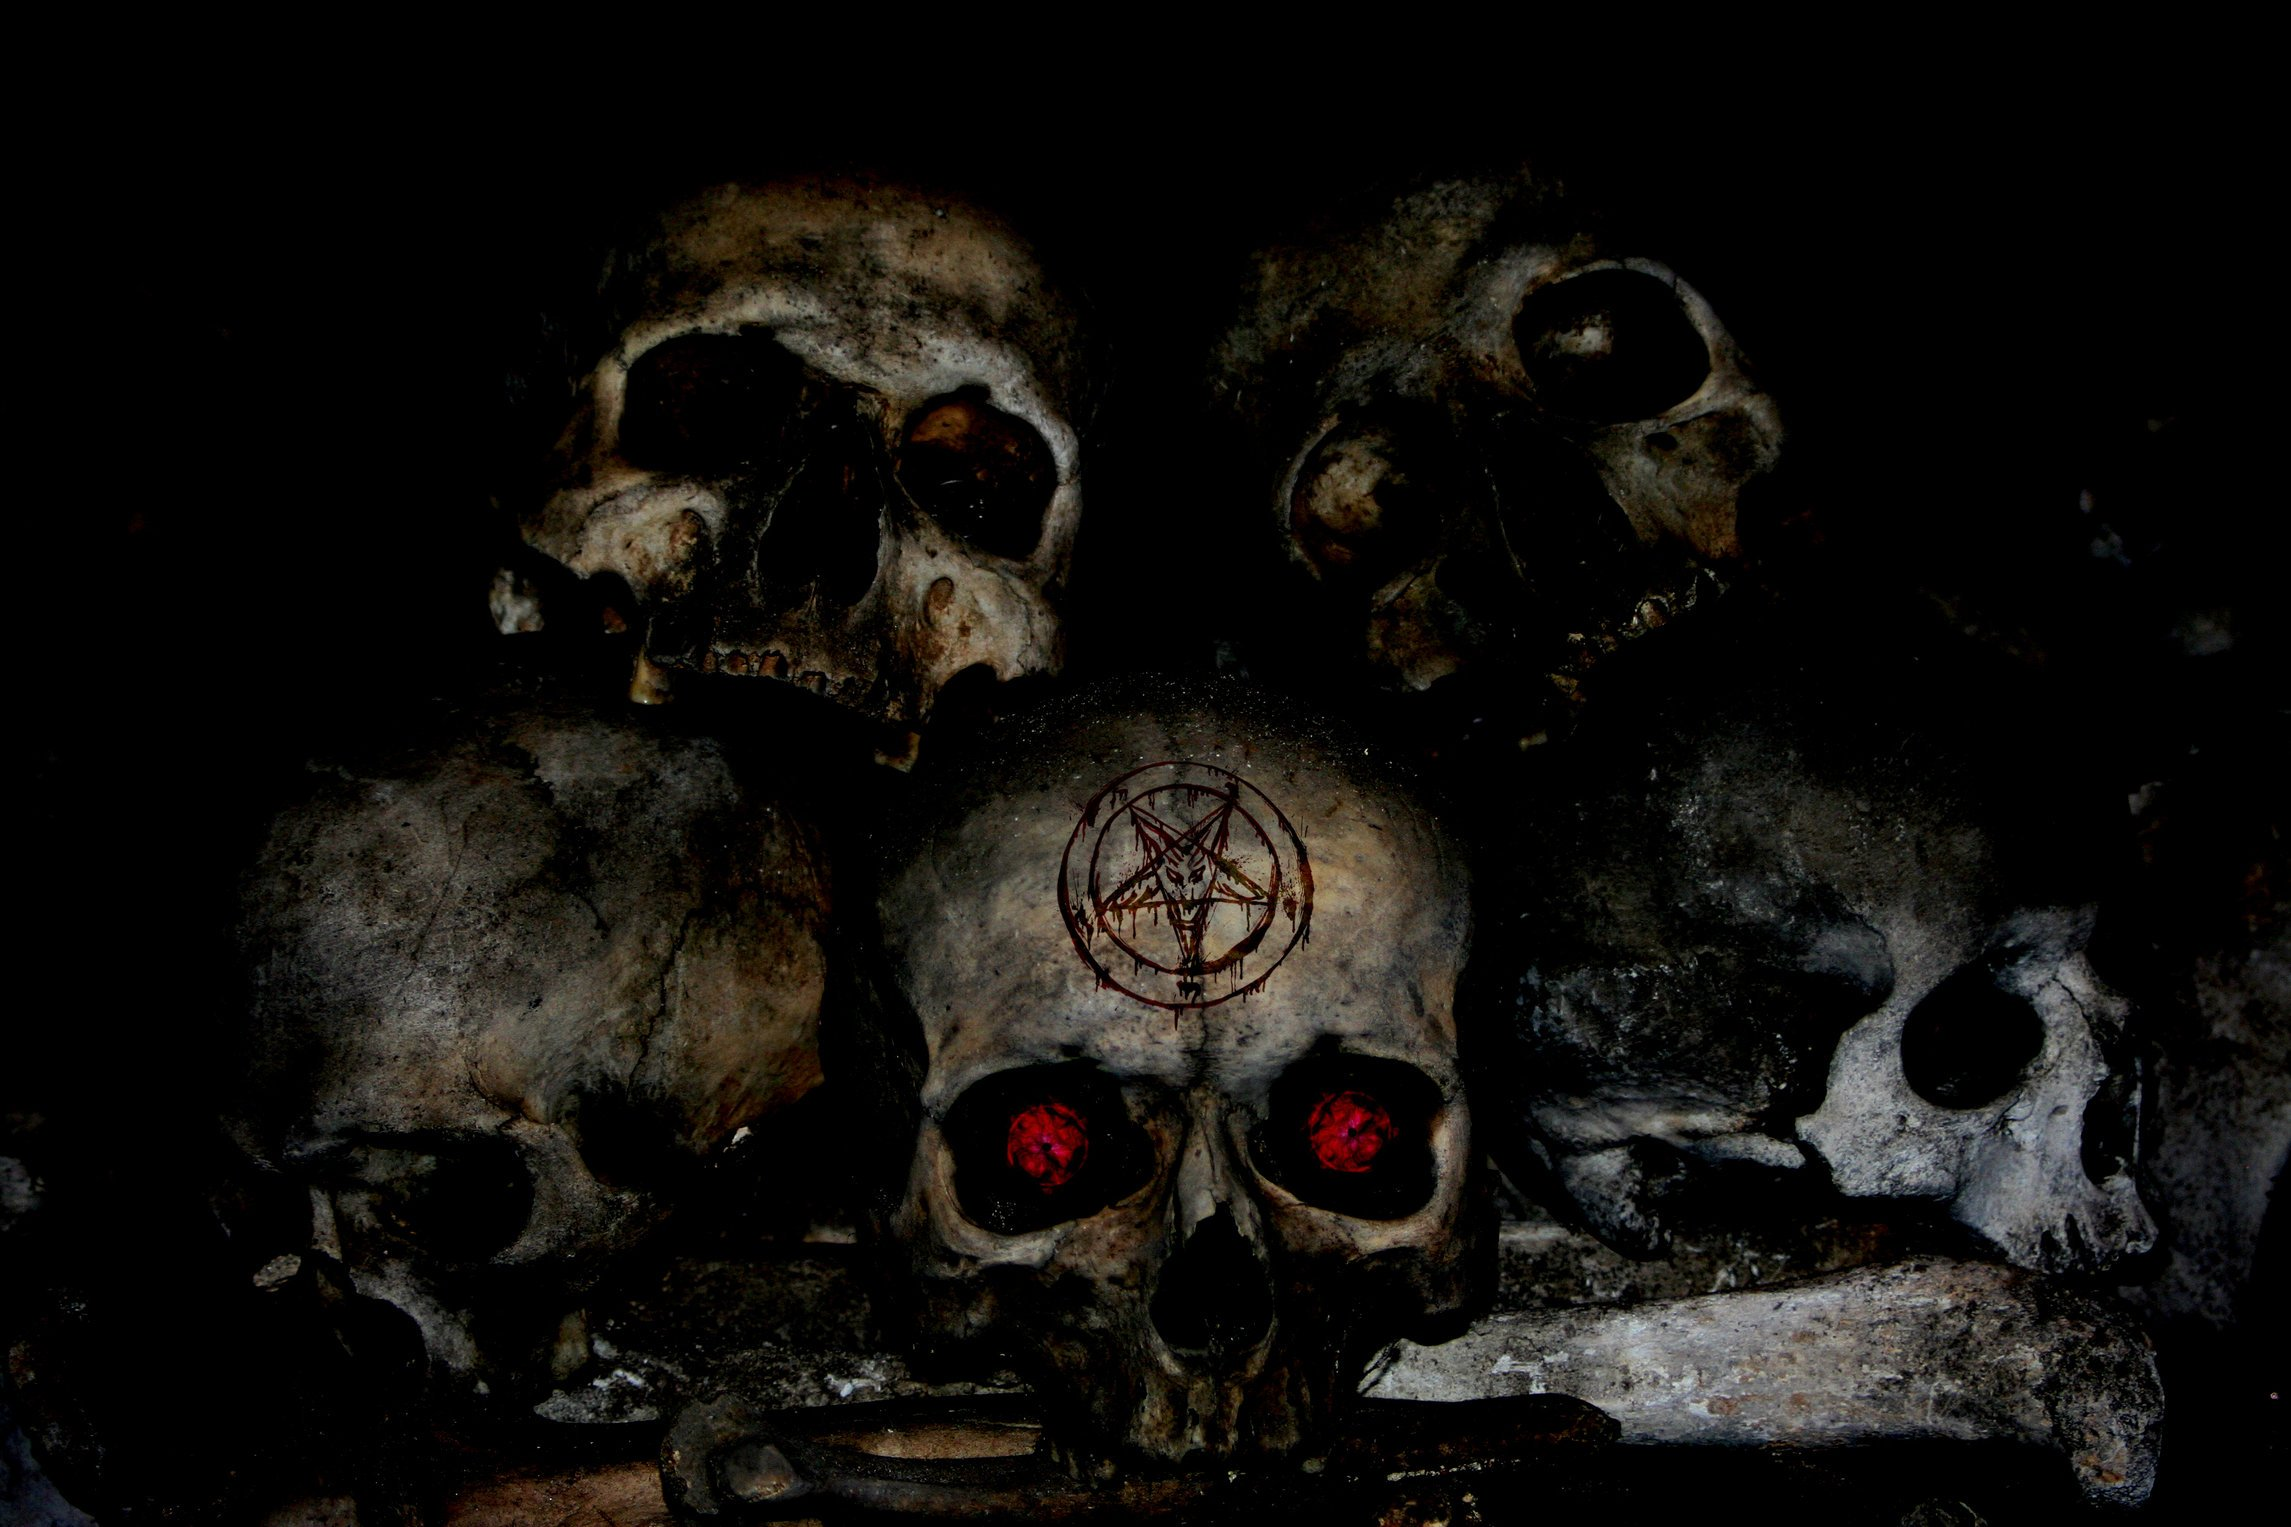 Evil skulls wallpaper wallpapersafari - Devil skull wallpaper ...